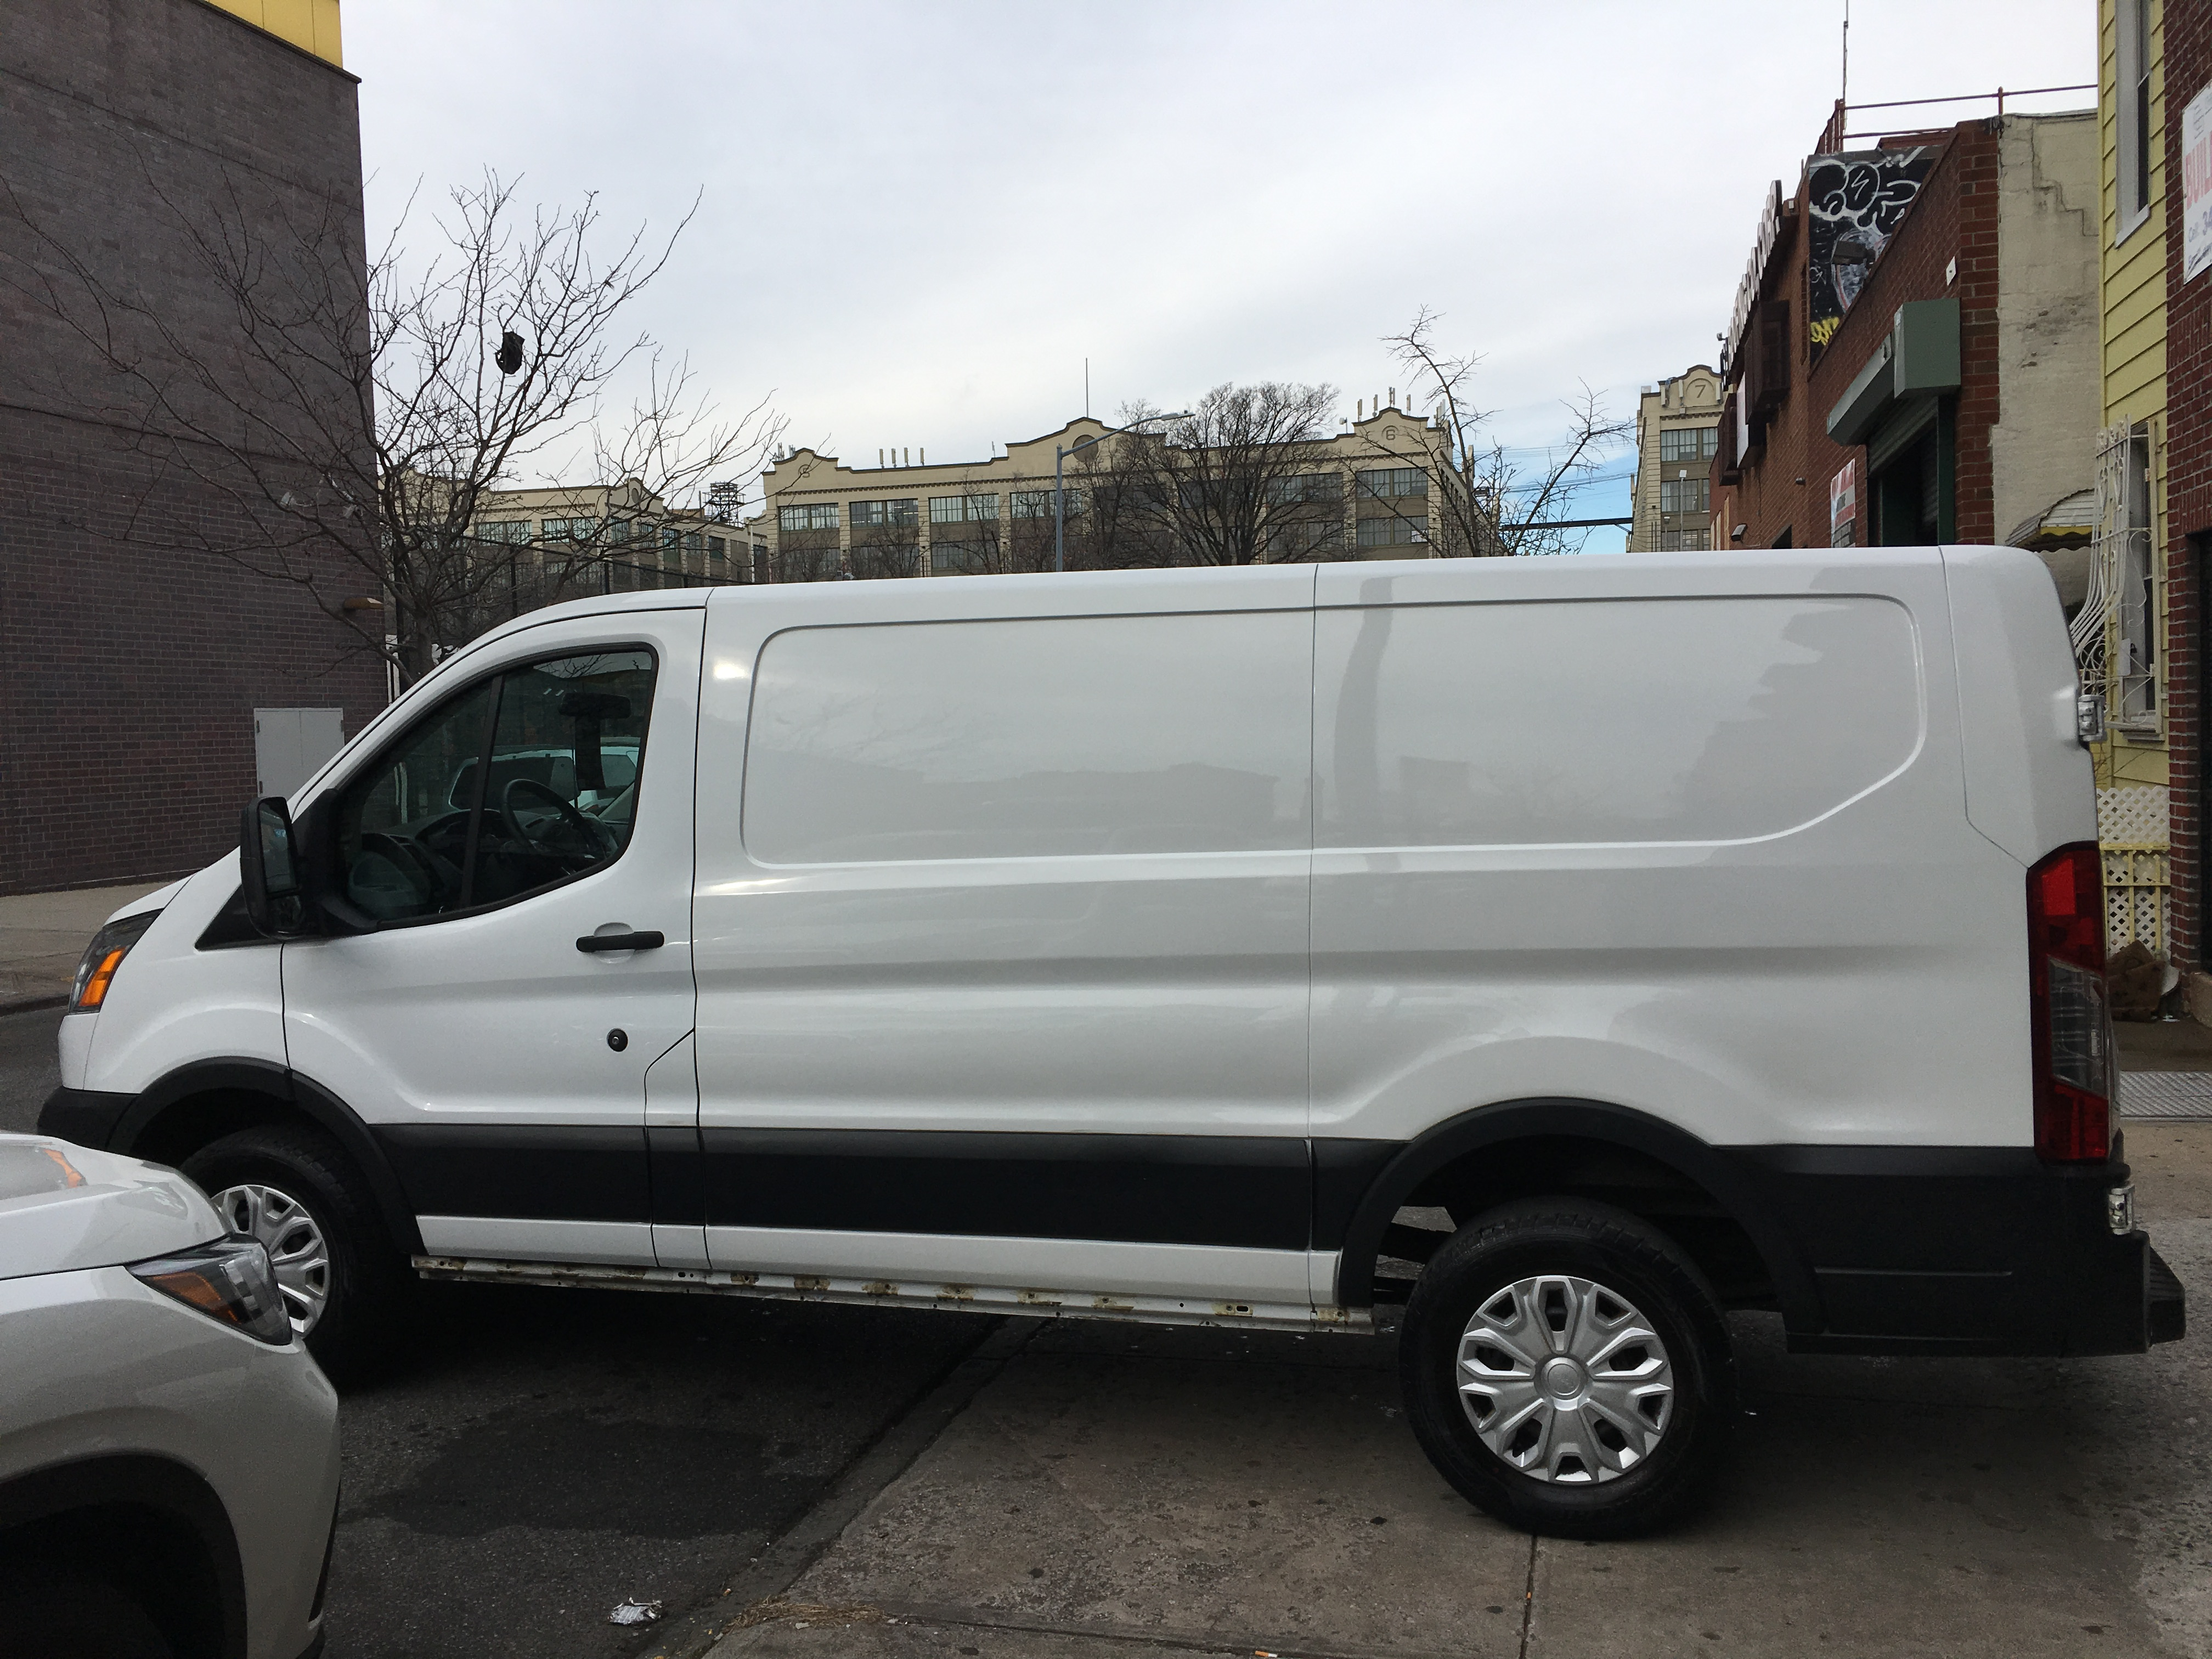 46d56da4f9 2015 FORD TRANSIT 250 VAN LOW ROOF 60 40 PASS.130-IN. WB OXFORD ...